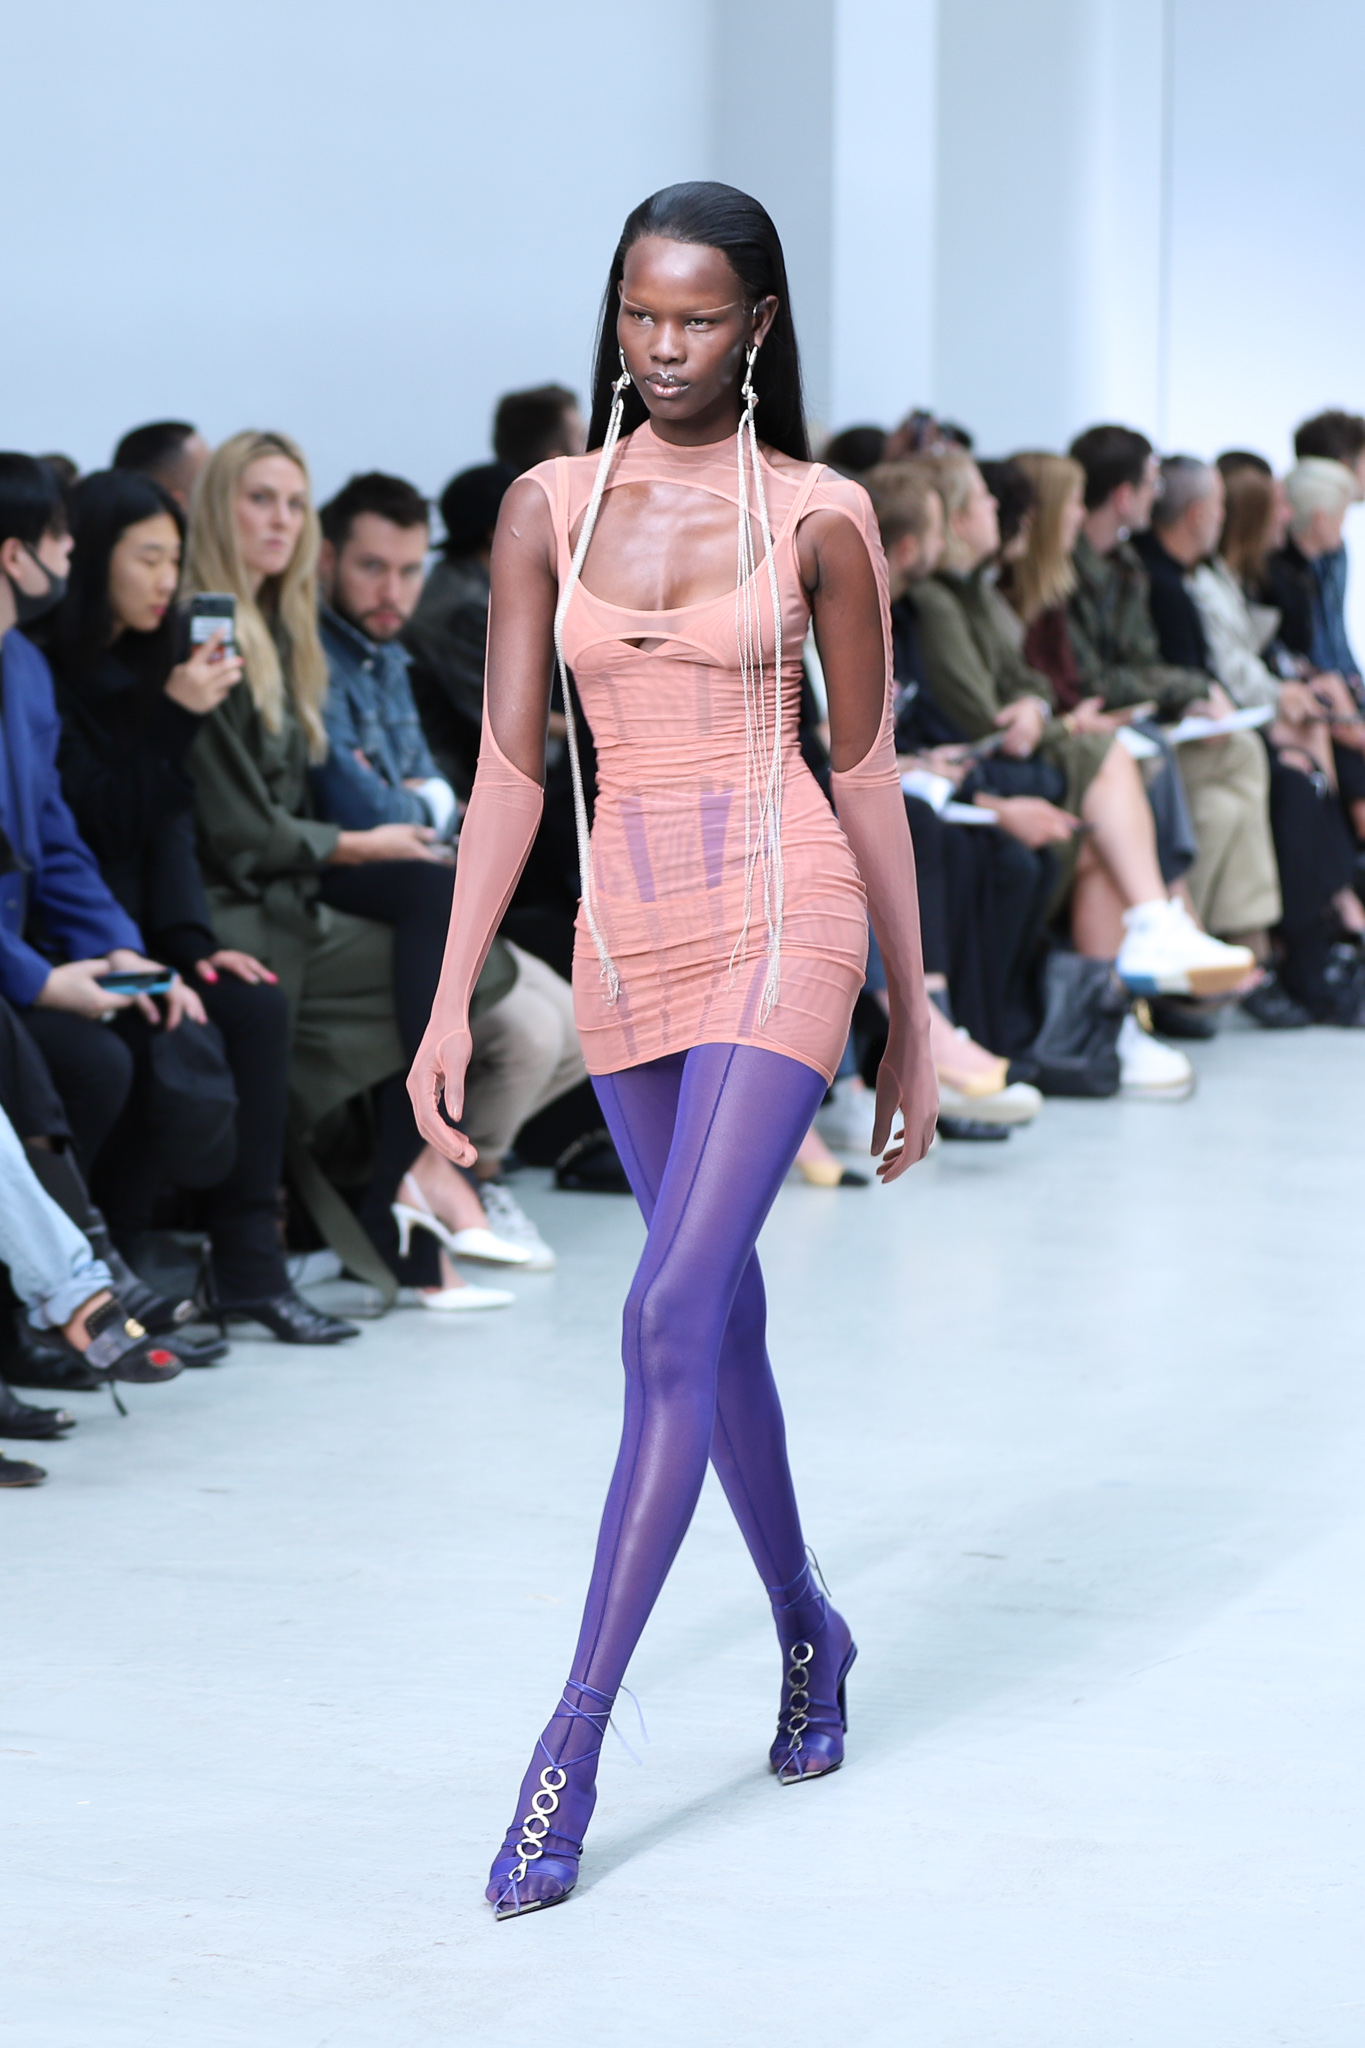 Mugler Runway Sheer Cut Out Glove Dress Leggings in Purple Long Earrings Spring 20 RTW